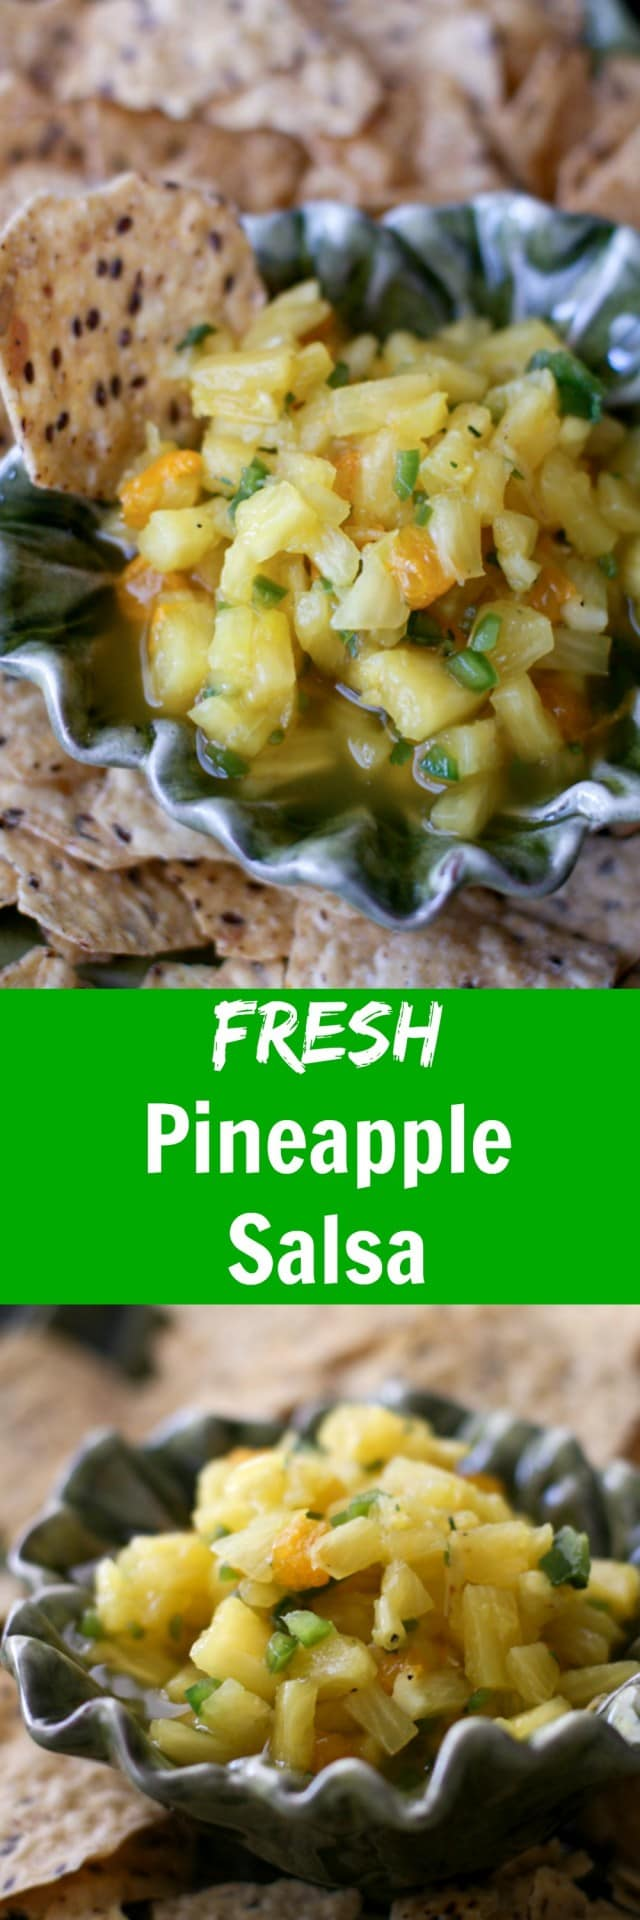 Brighten up your chips & salsa spread with this Fresh Pineapple Salsa! Great over grilled chicken or fish too. Recipe via aggieskitchen.com